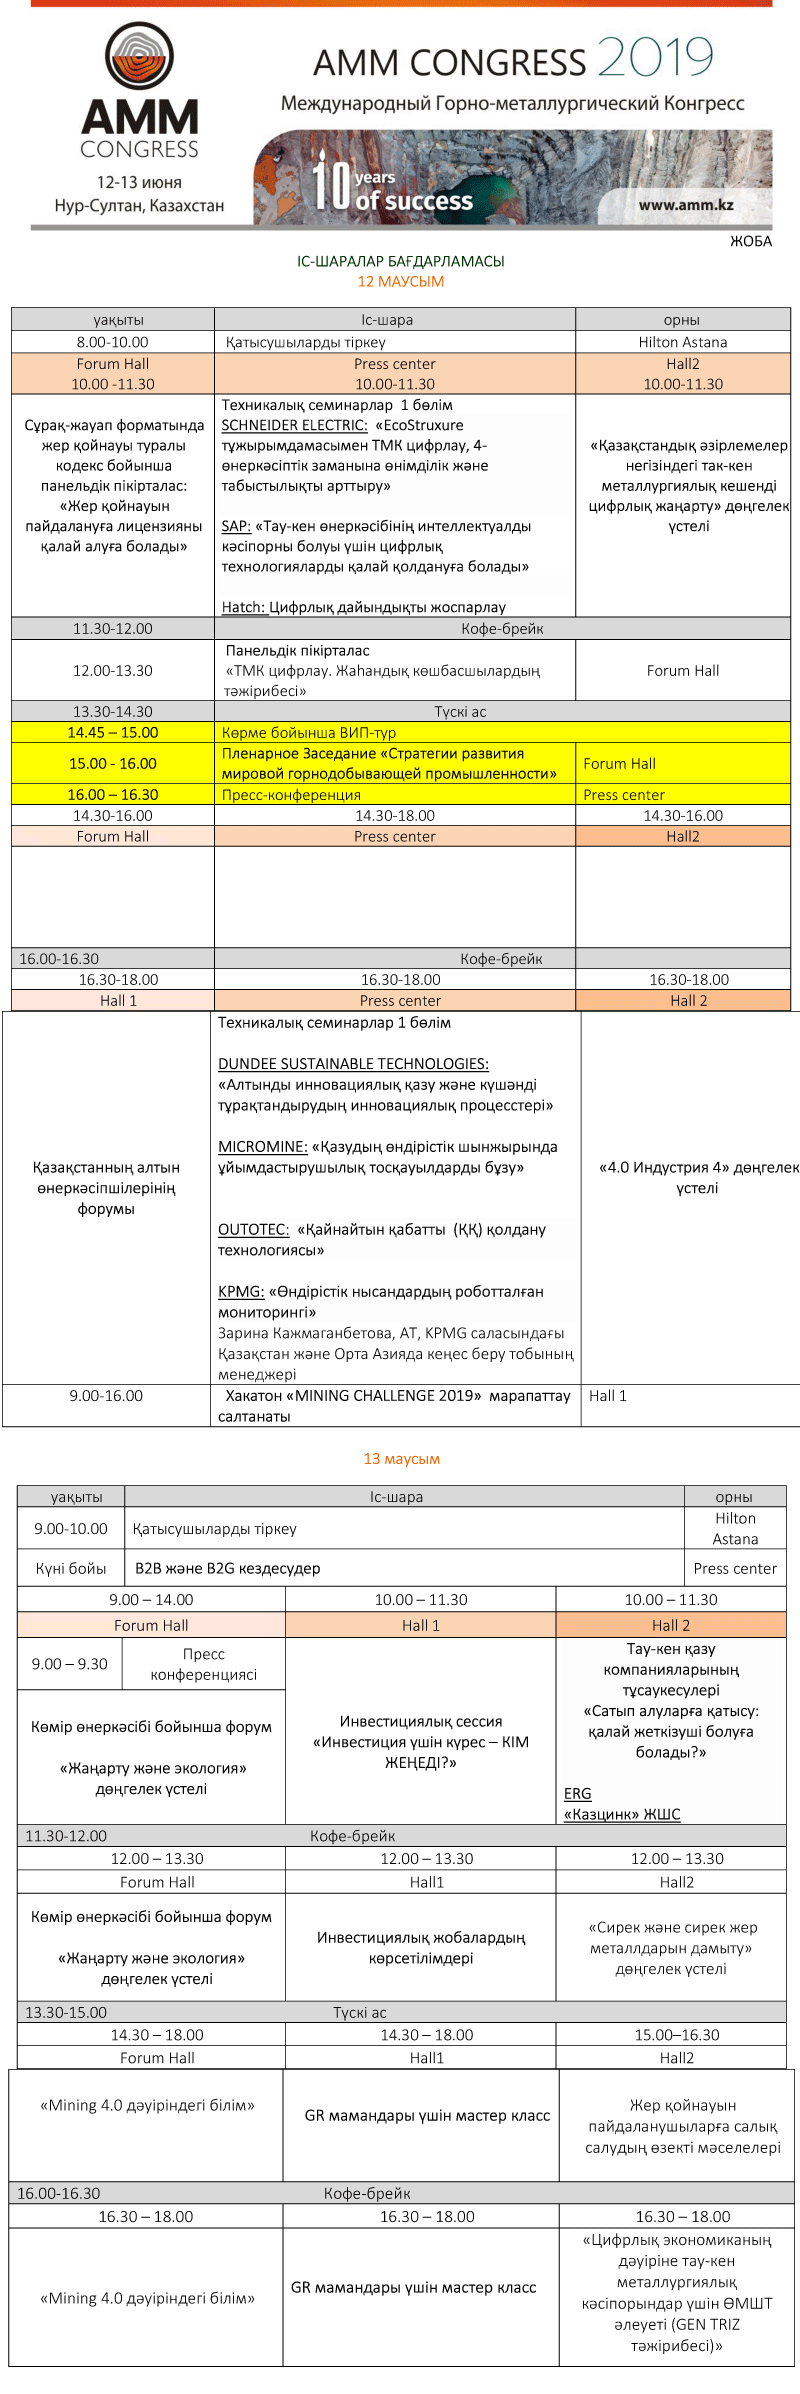 Programm InterFood Astana19 21.05.2019